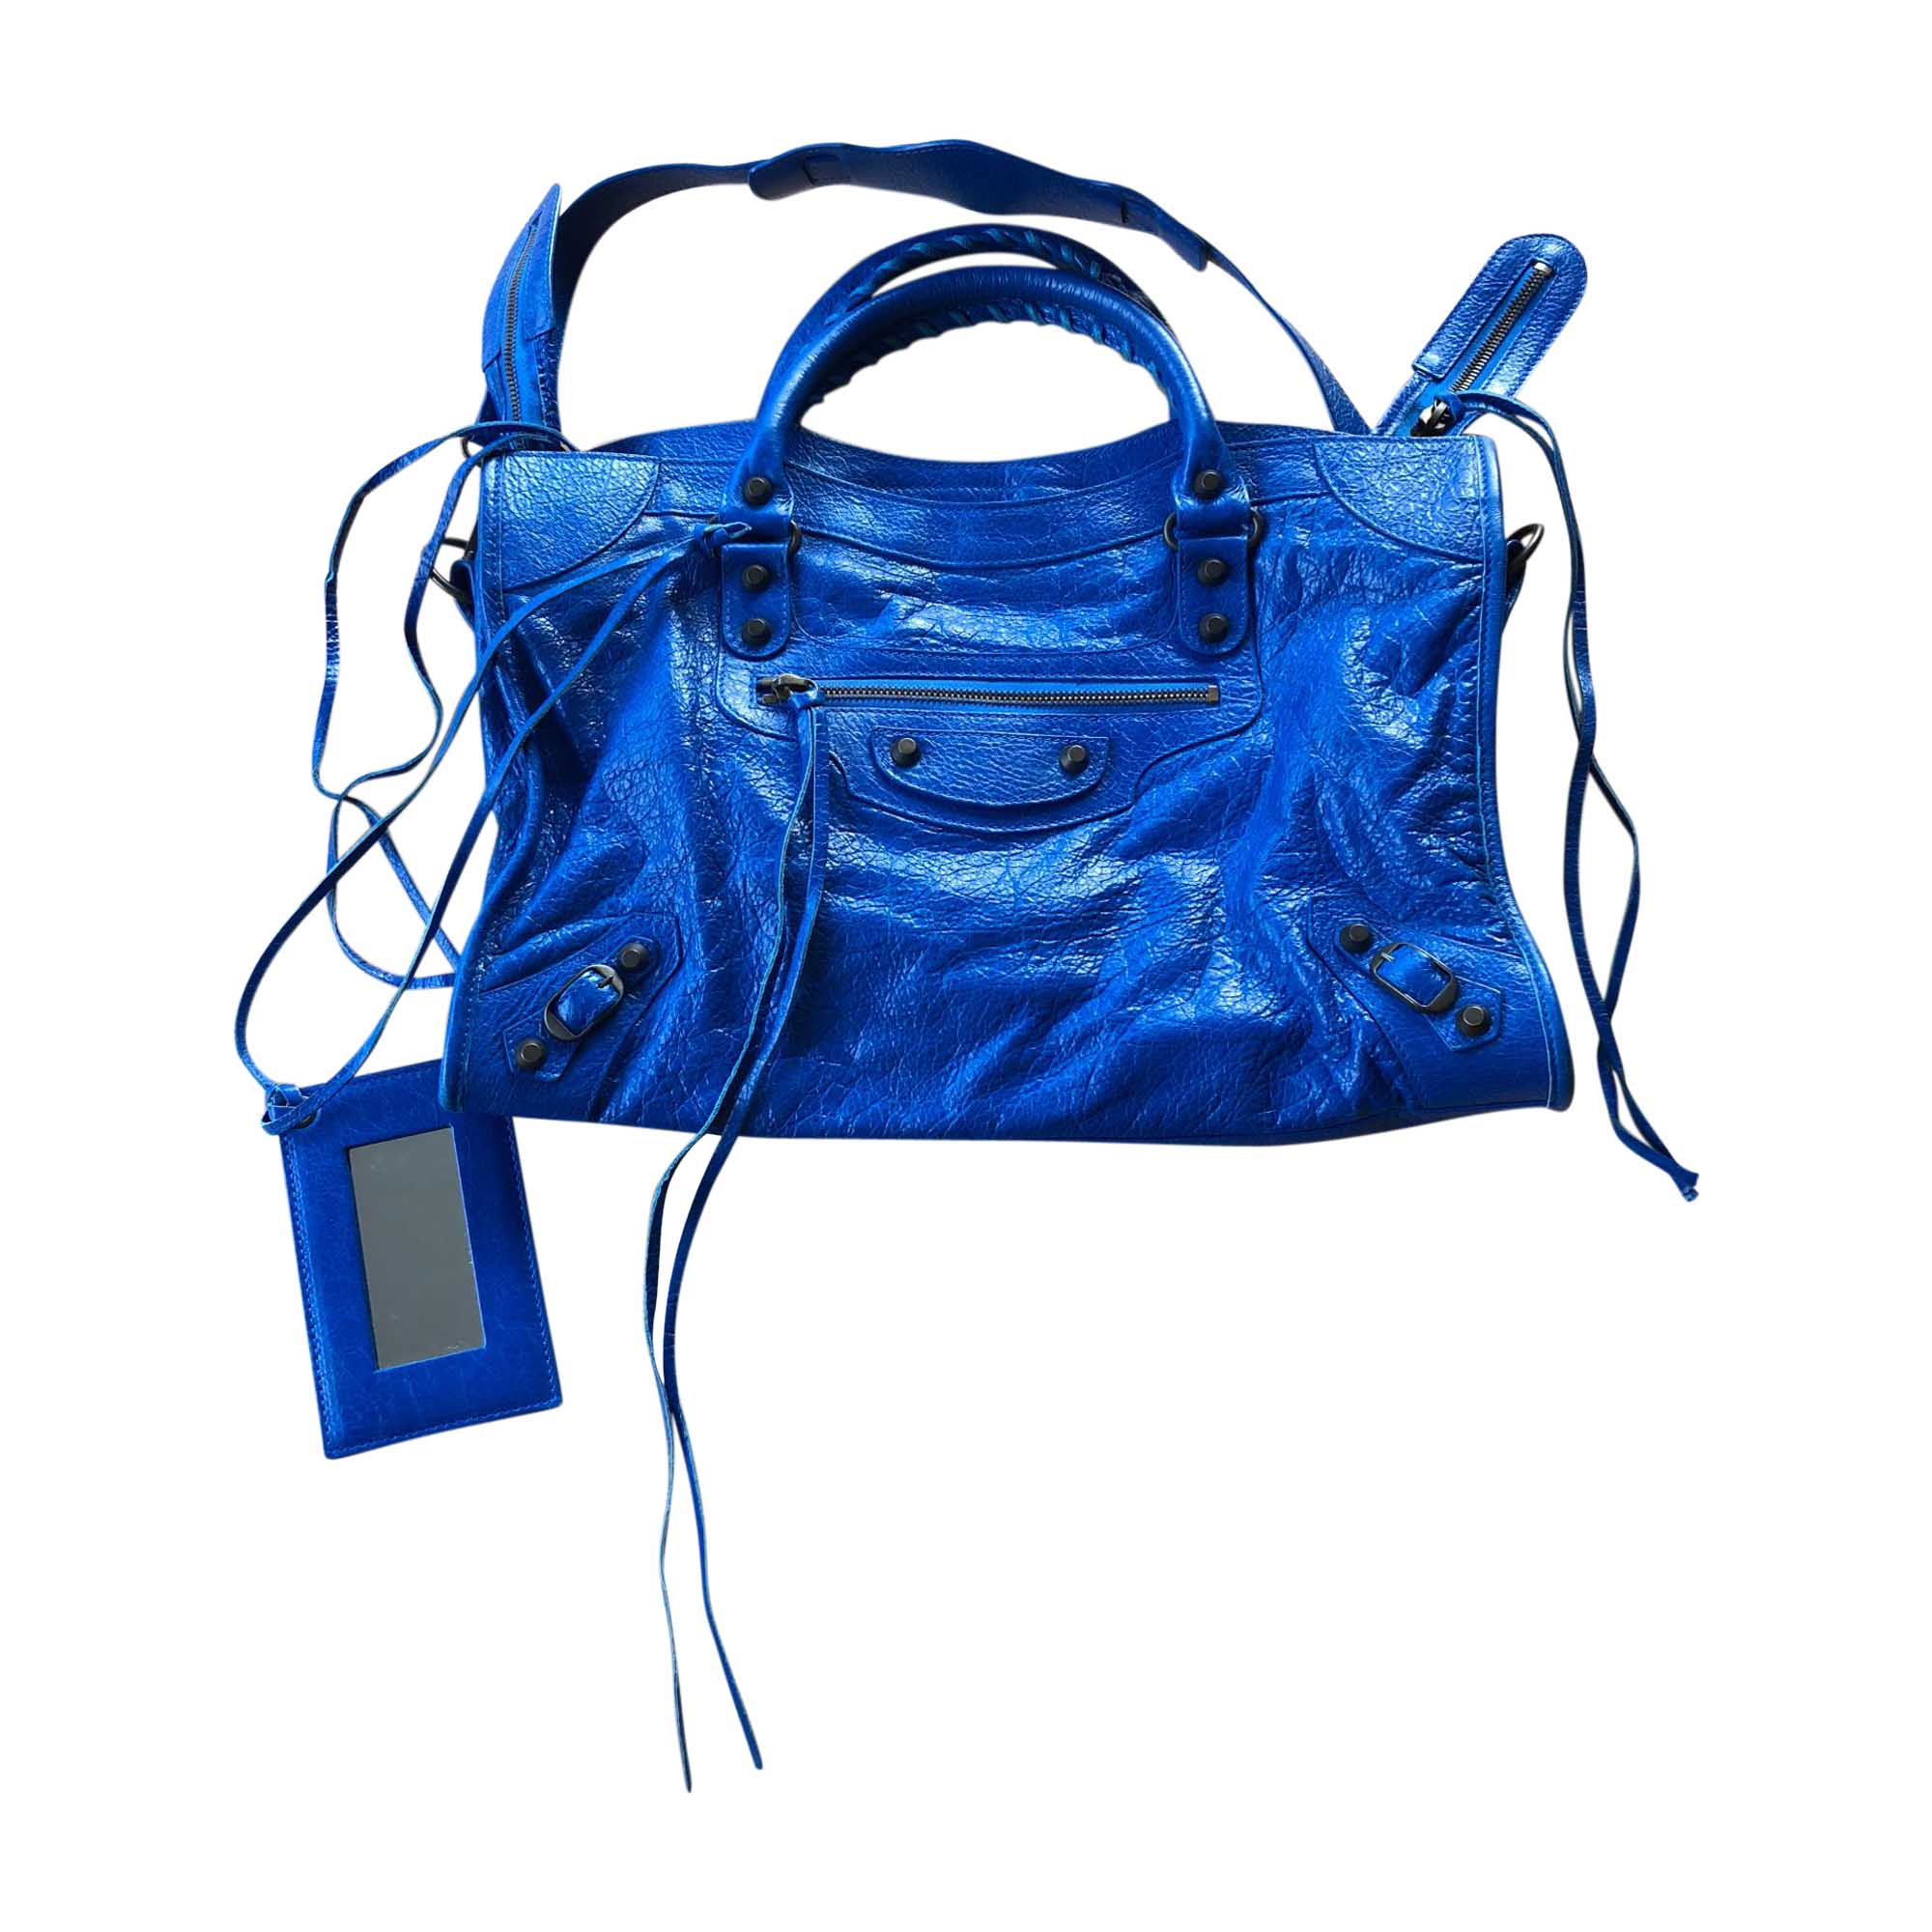 Leather Handbag BALENCIAGA City Blue, navy, turquoise